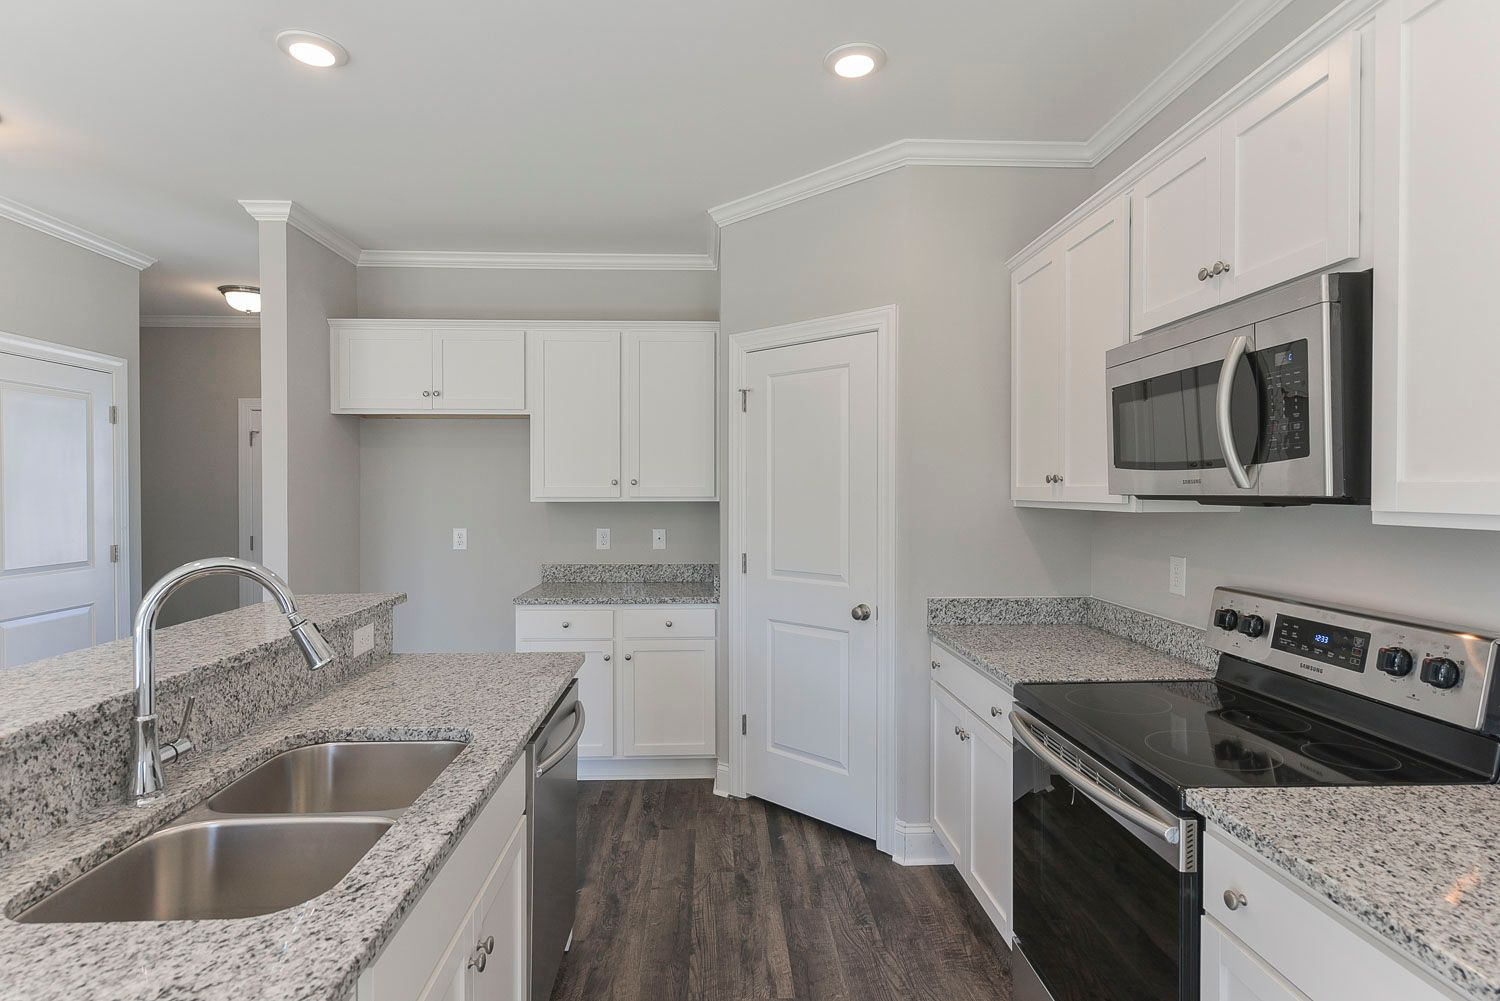 Kitchen featured in the Wildwood Sidney Walk By Executive Construction Homes in Columbia, SC